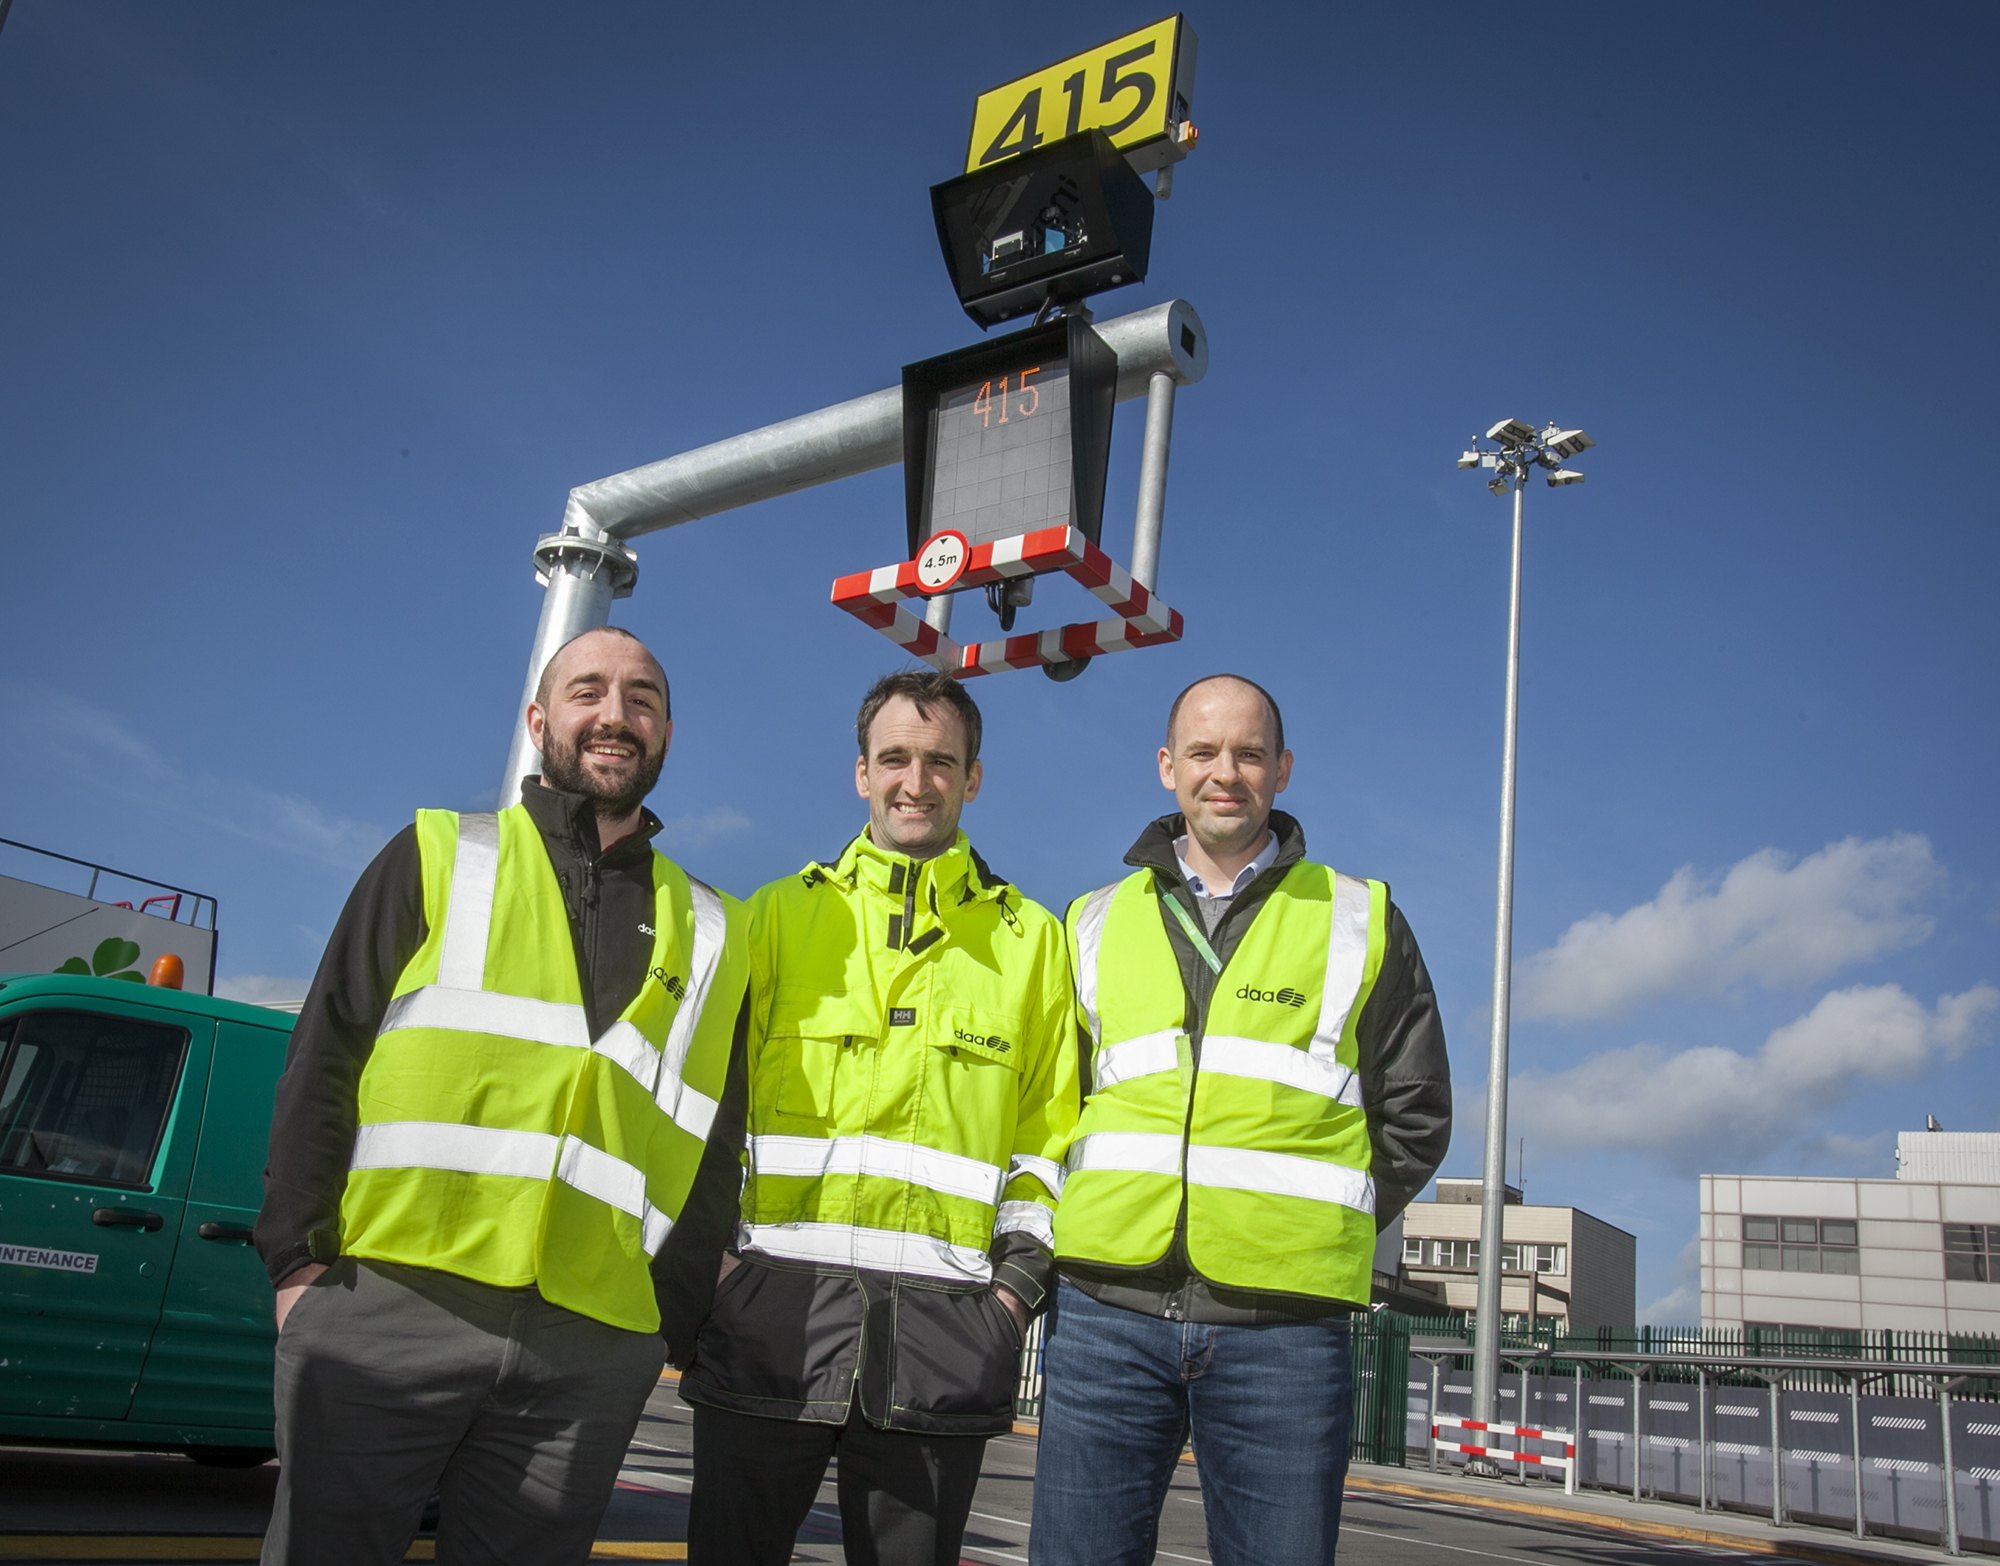 Mark O'Connor, Project Manager, Asset Management and Development Dublin Airport; Conor Carroll, Client Project Owner, Asset Care, Dublin Airport and Dan Davis, Senior Project Manager IT, Dublin Airport pictured with the new AVDGS in Dublin Airport.